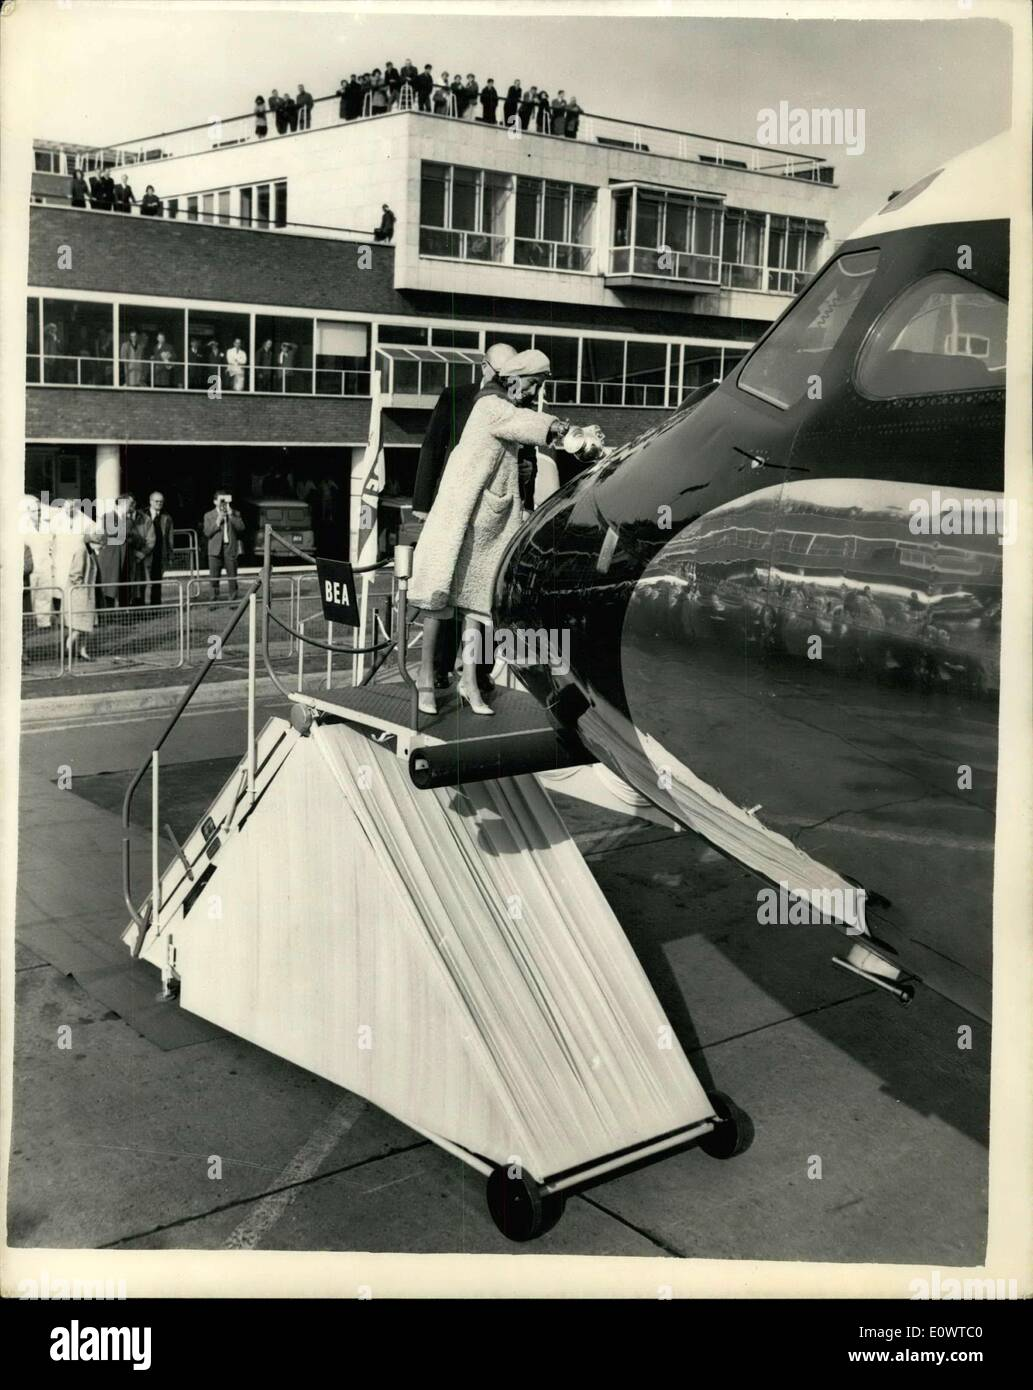 Feb. 28, 1964 - New ''Trident'' Jet Christened: At a ceremony at London Airport today, Lady Douglas Of Kirtleside, wife of the Chairman of B.E.A., christened the first of the new 610 m.p.h. ''three pronged'' Trident jet aircraft which is due to come into service very shortly. Photo shows Lady Douglas christens the Trident. - Stock Image